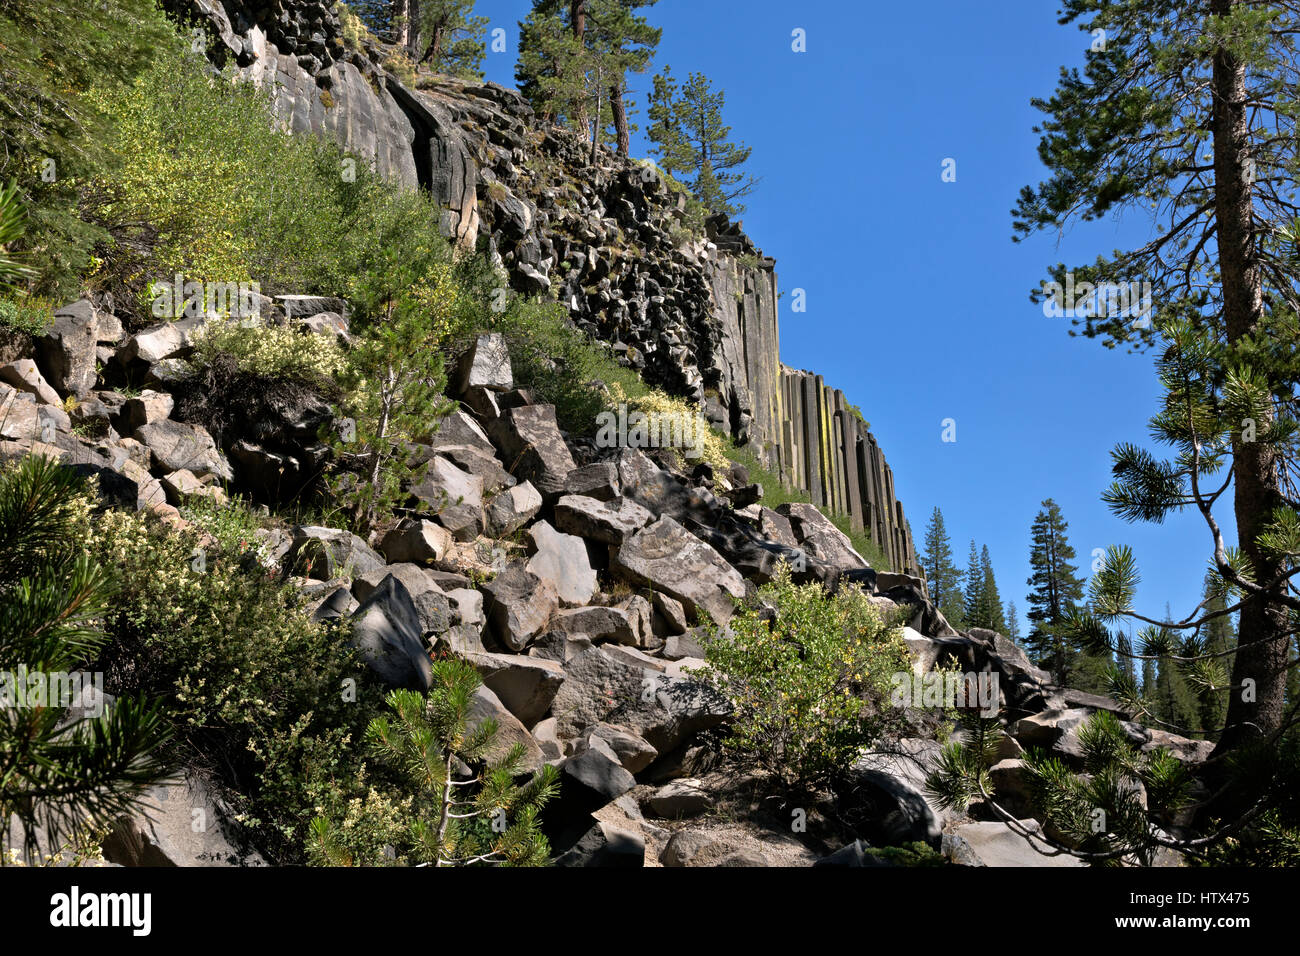 CA03040-00...CALIFORNIA - Wall of columnar basalt at Devils Postpile National Monument. - Stock Image